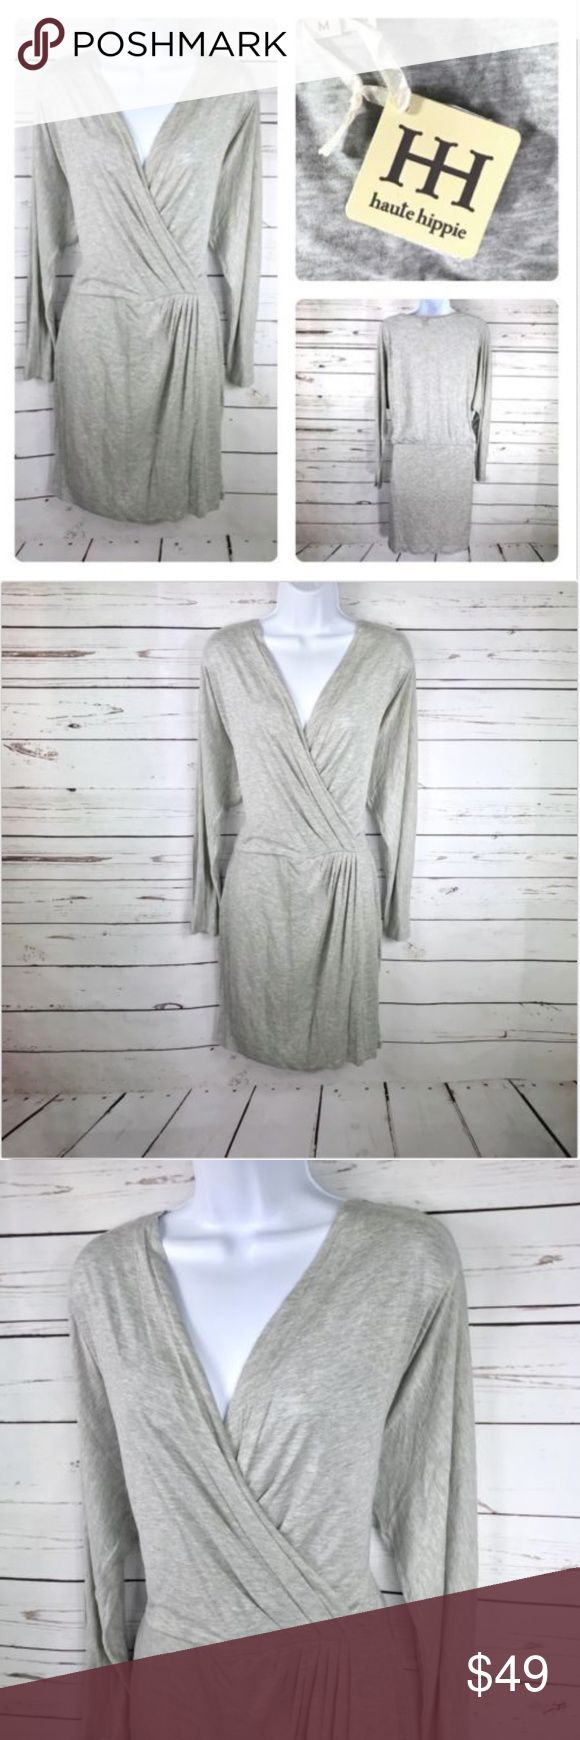 Haute Hippie Gray Faux Wrap Jersey Knit Dress Size: Medium  Materials: 100% Modal  Measurements (approximate) Length: 37 Inches Underarm to underarm (laying flat): 21 Inches Waist: 14 Inches (elastic)  Condition: New with tags. No holes, rips, or stains. Haute Hippie Dresses Long Sleeve